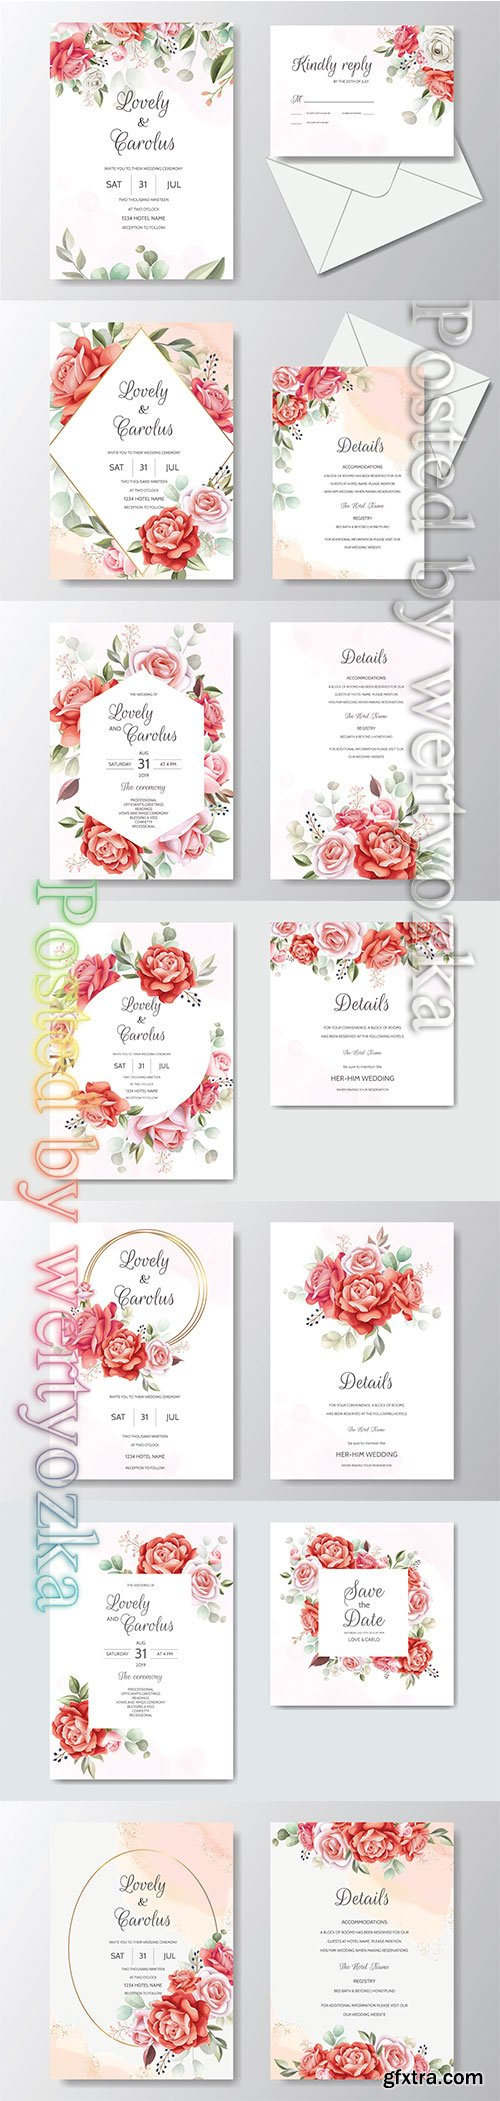 Wedding invitations with beautiful flowers and sophisticated design